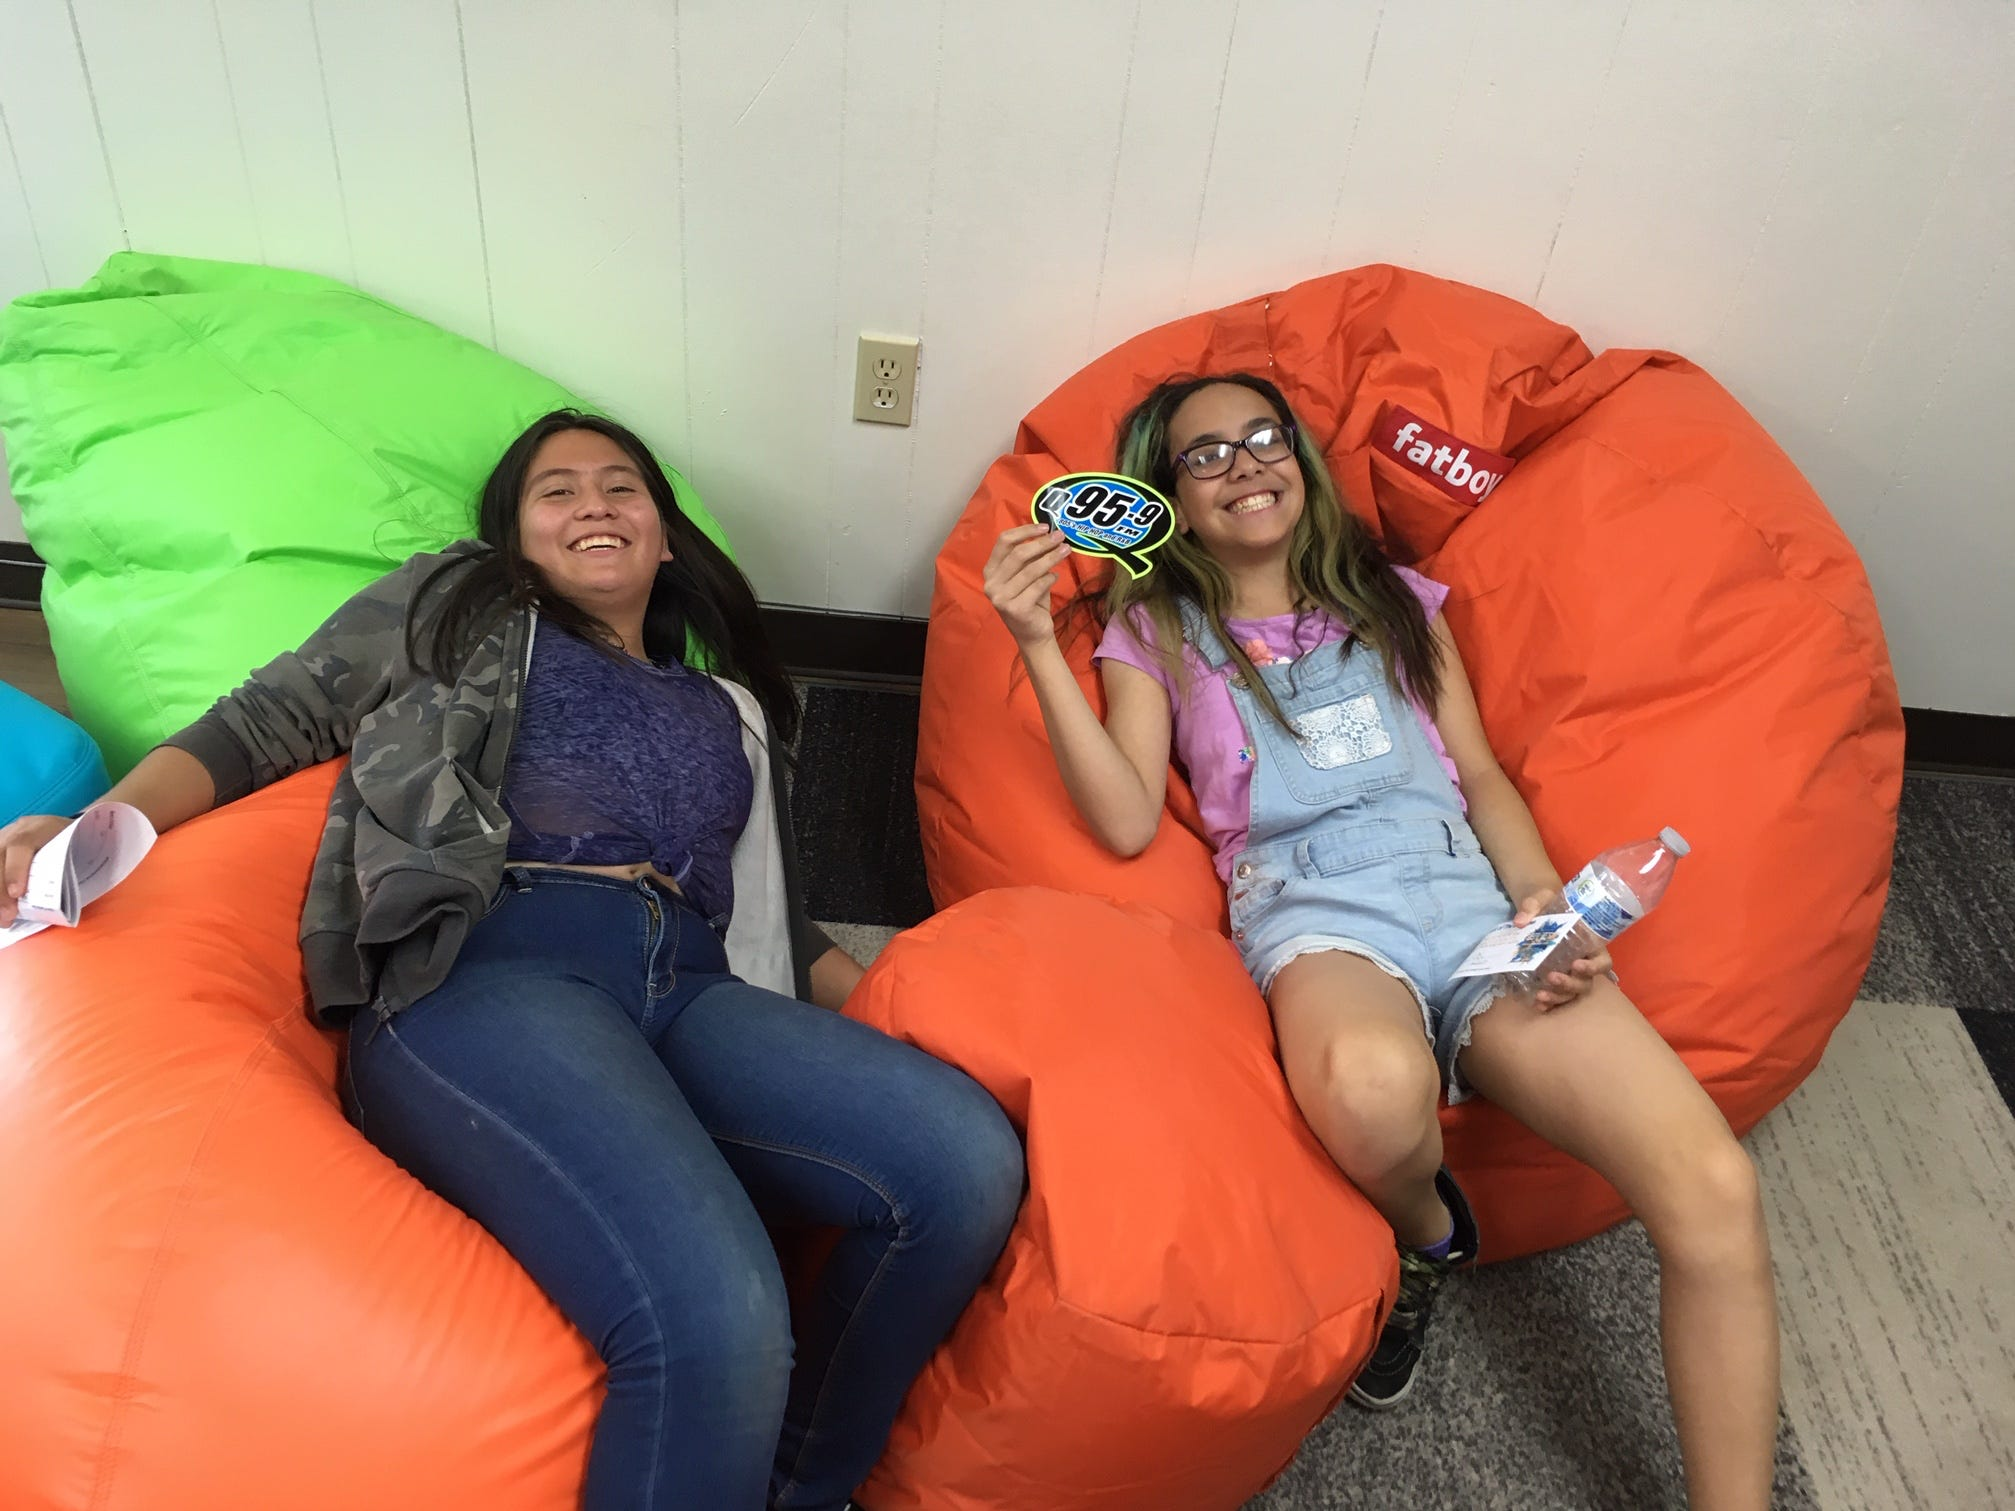 Isbell Middle School students Analily Almanza, 12, and Kylie Soria, 12, hang out in the lounge area of Santa Paula's new youth center.